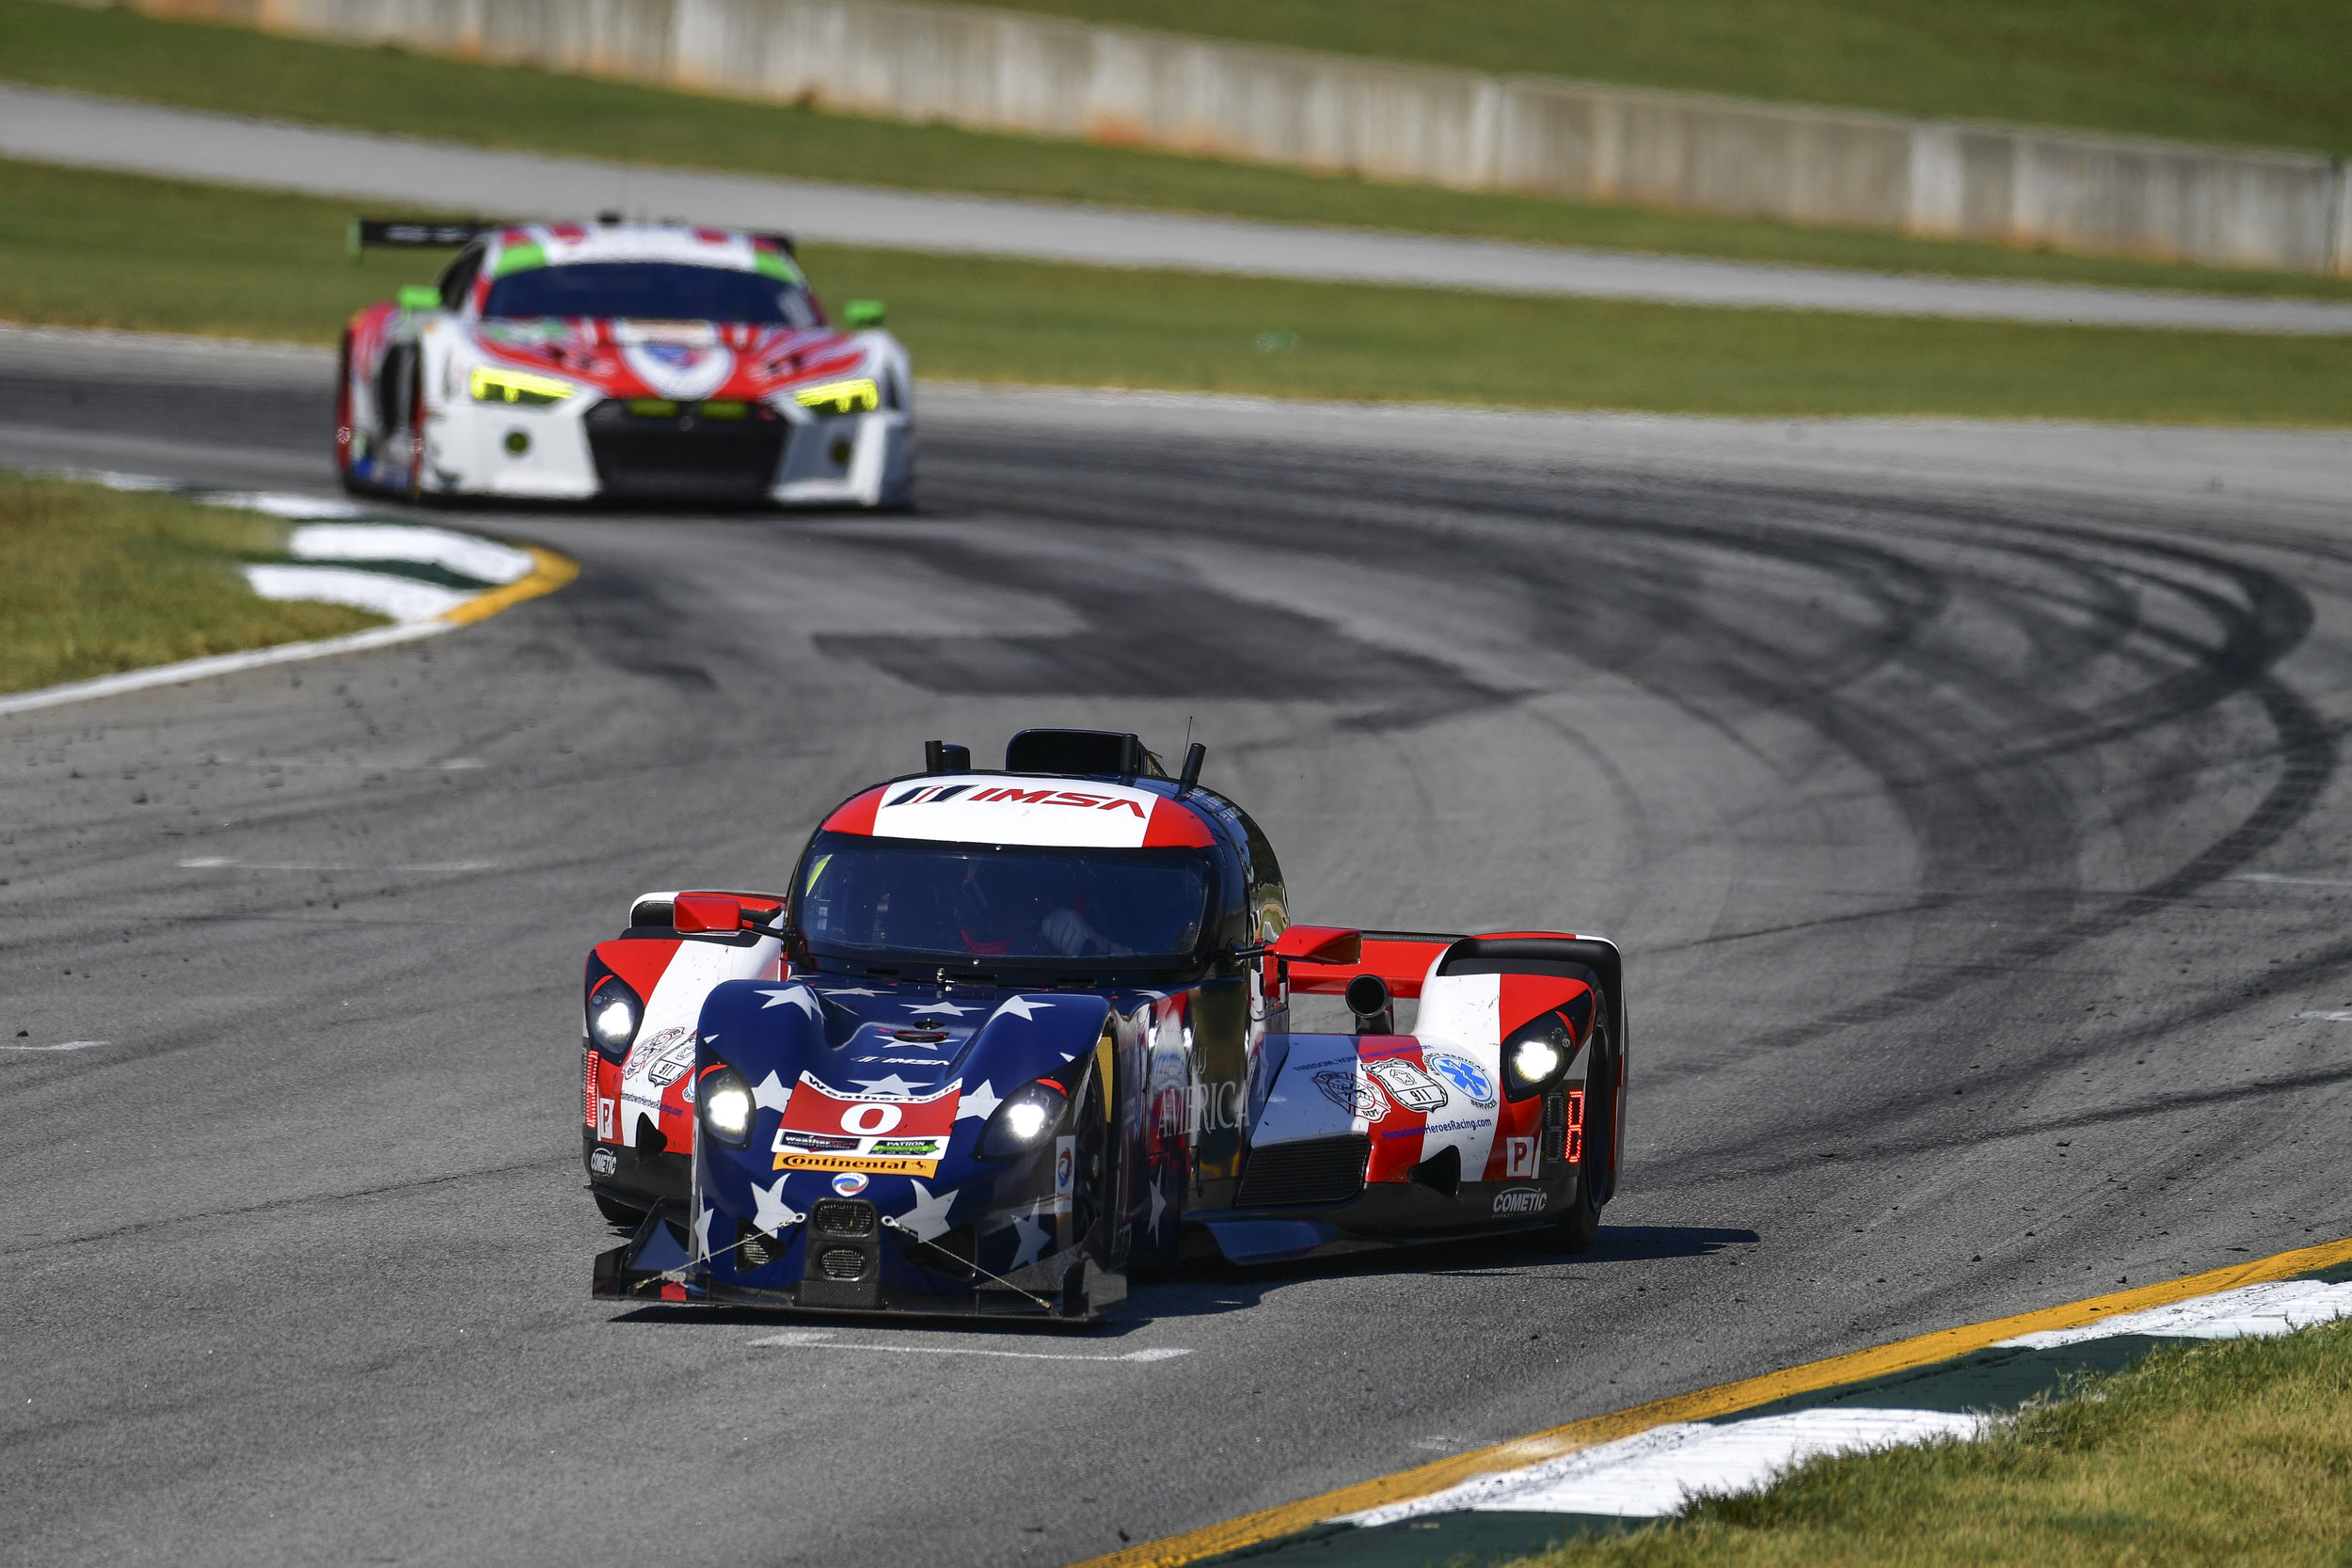 Delightful DeltaWing To Start Eighth On Tomorrowu0027s Grid